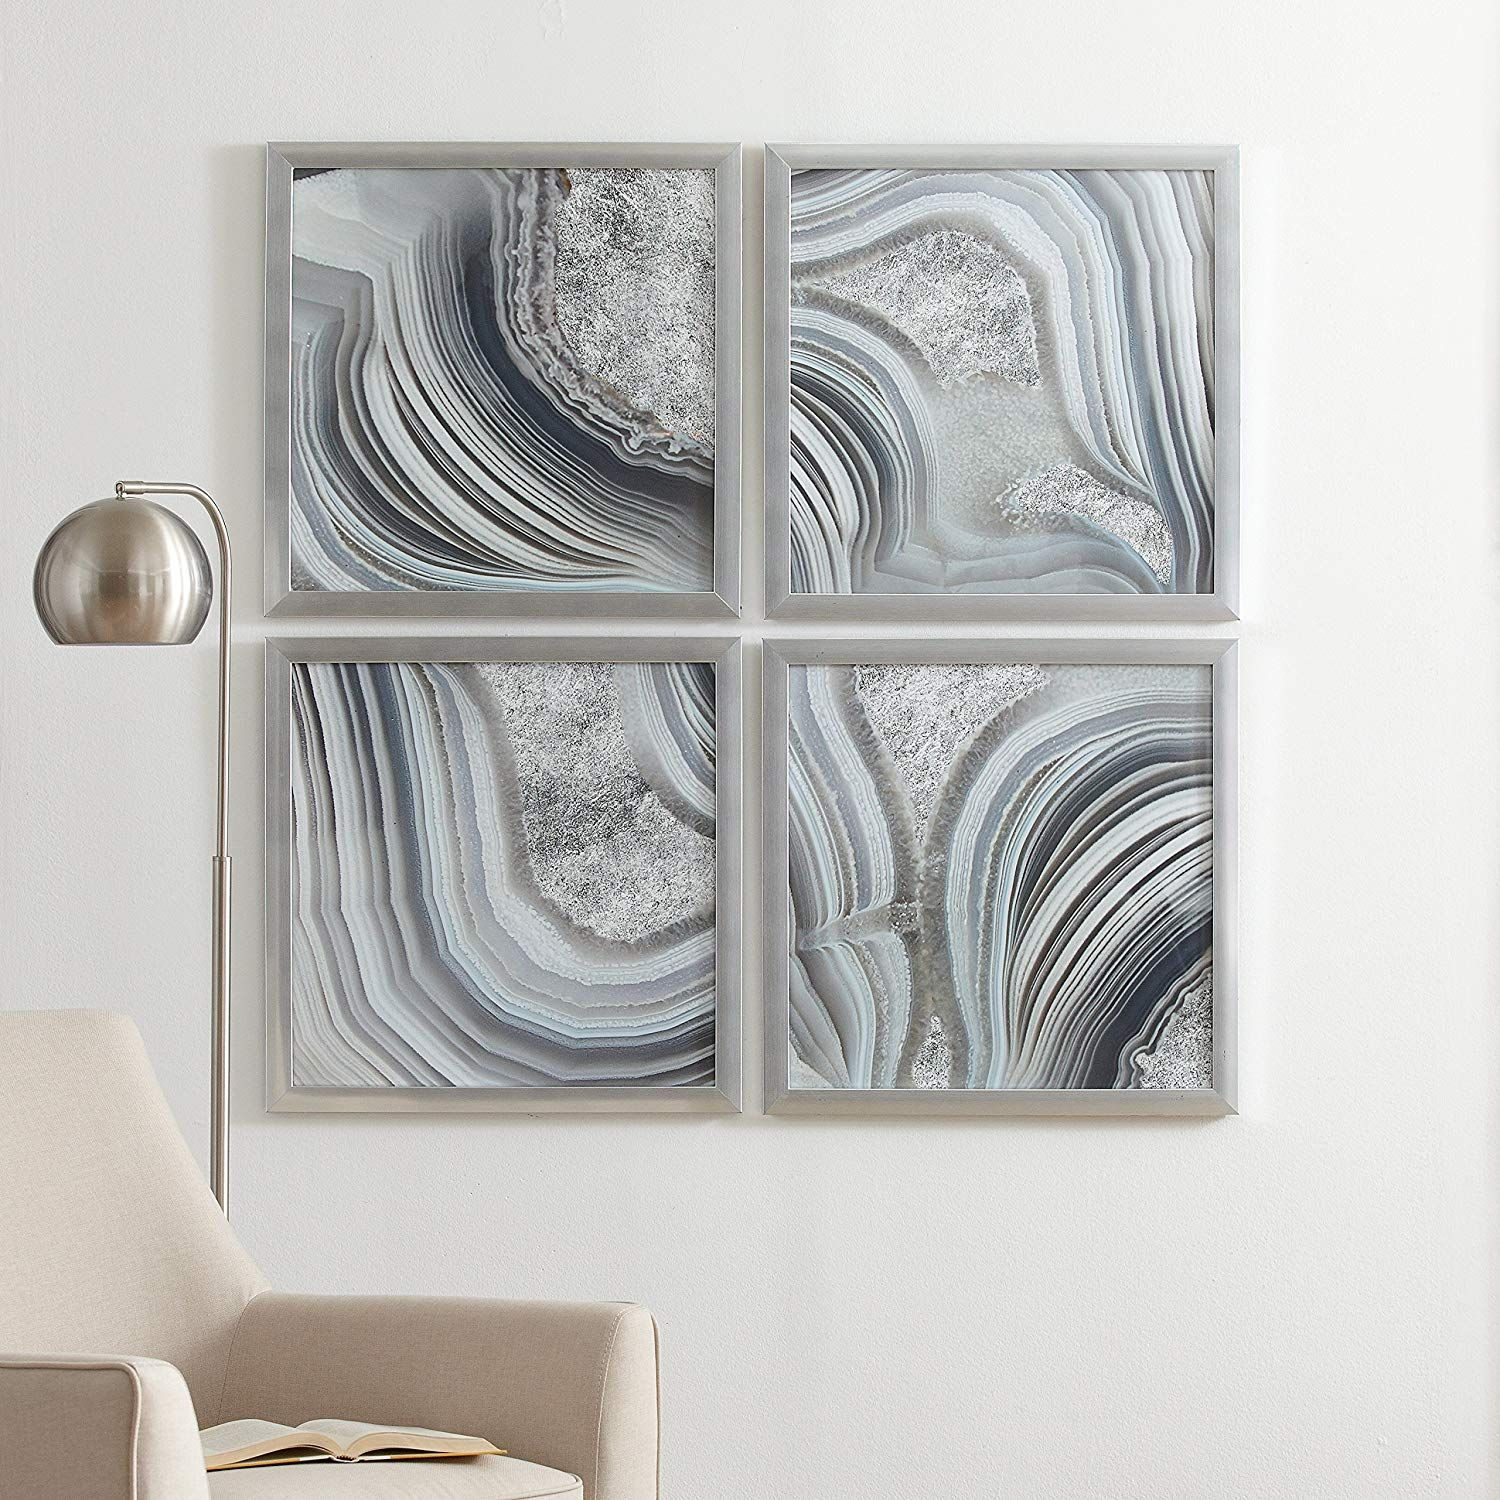 4 Silver Geodes Prints Wall Art Decor In Silver Frames 22 X 22 Each 44 X 44 Overall Wall Art Prints Silver Frames Prints